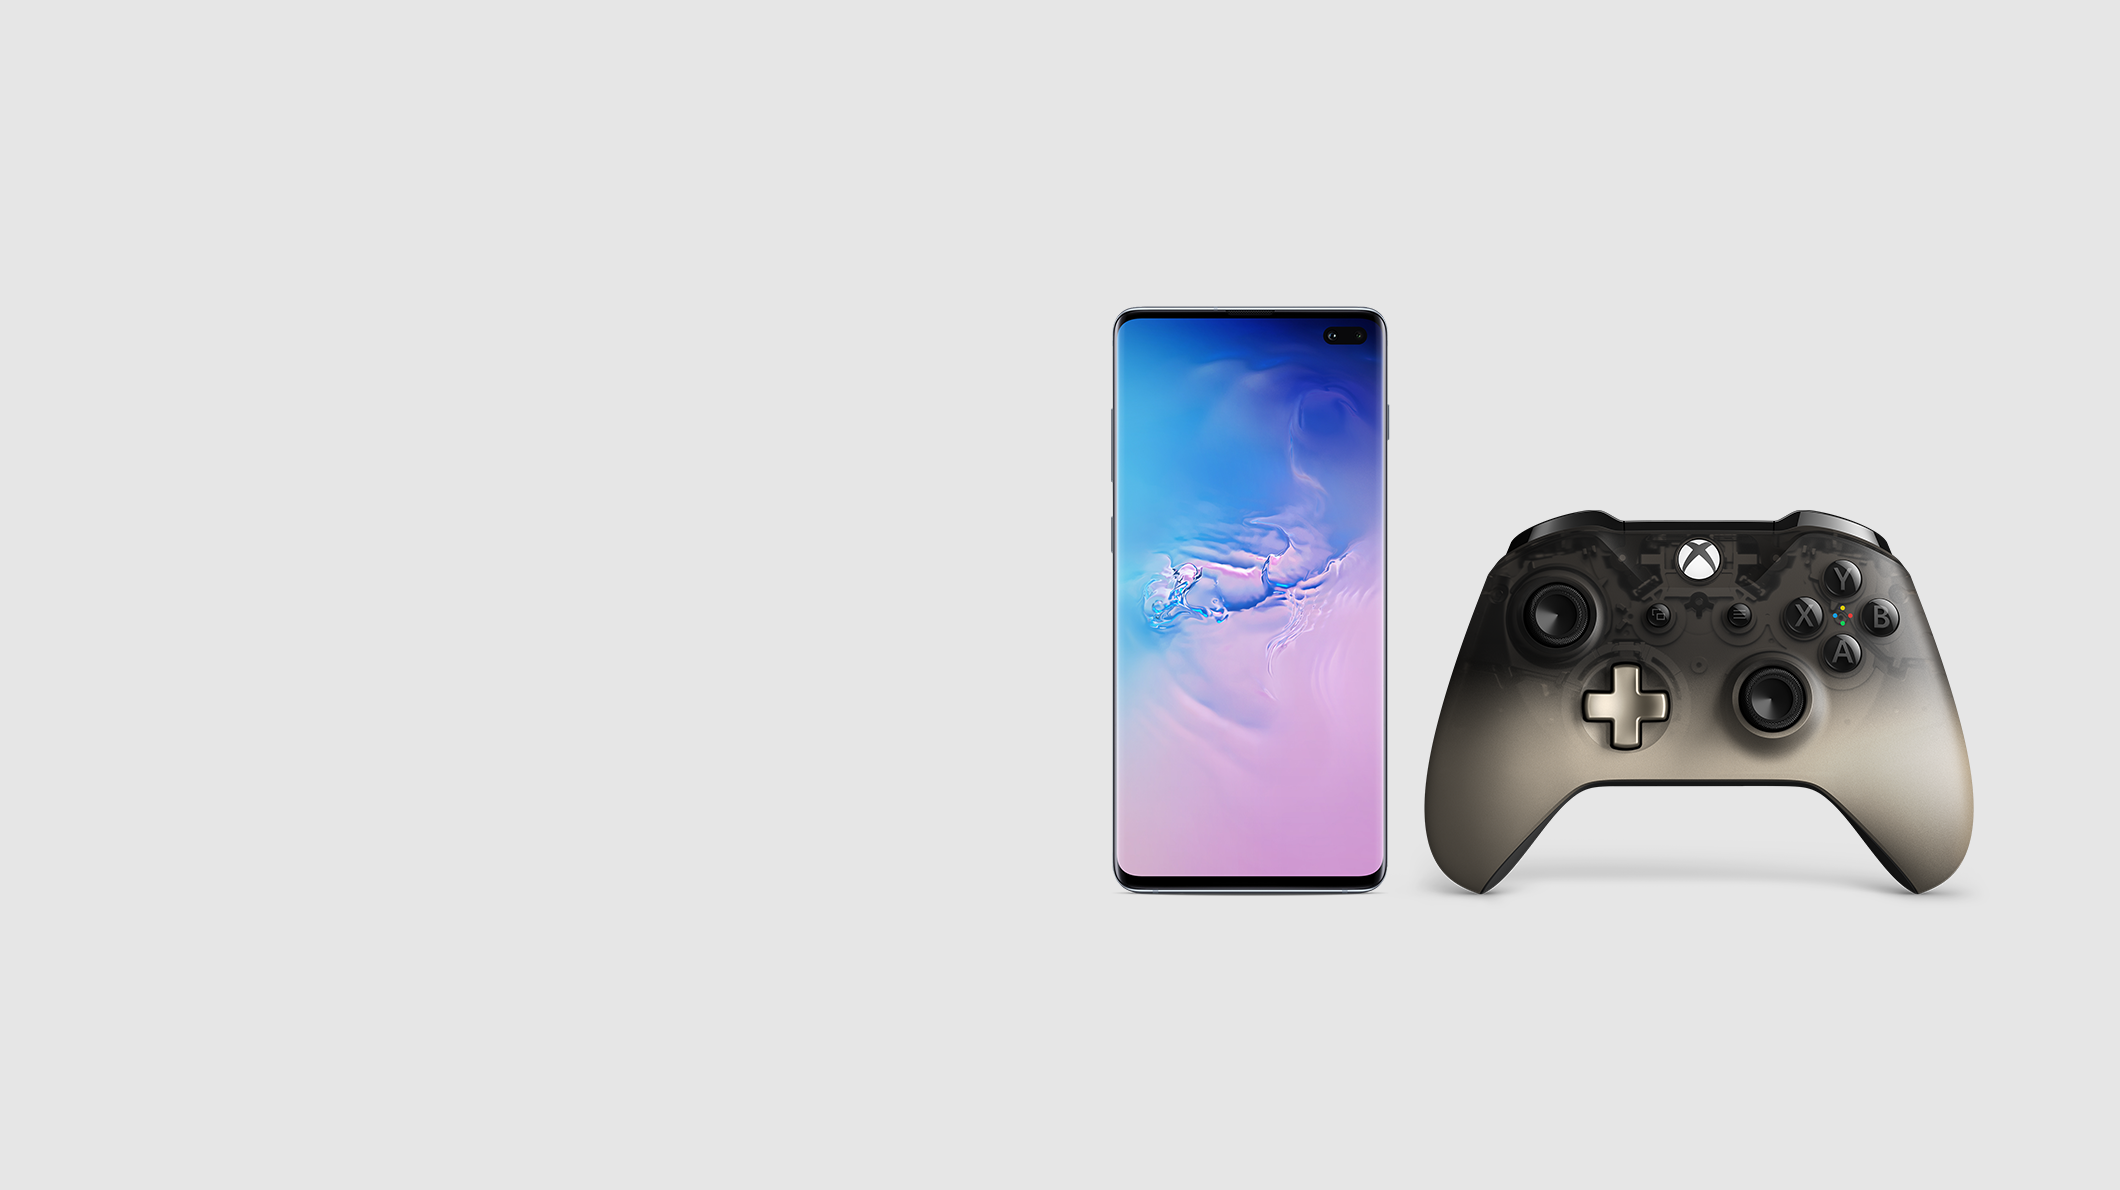 Samsung Galaxy S9+ phone and an Xbox controller.